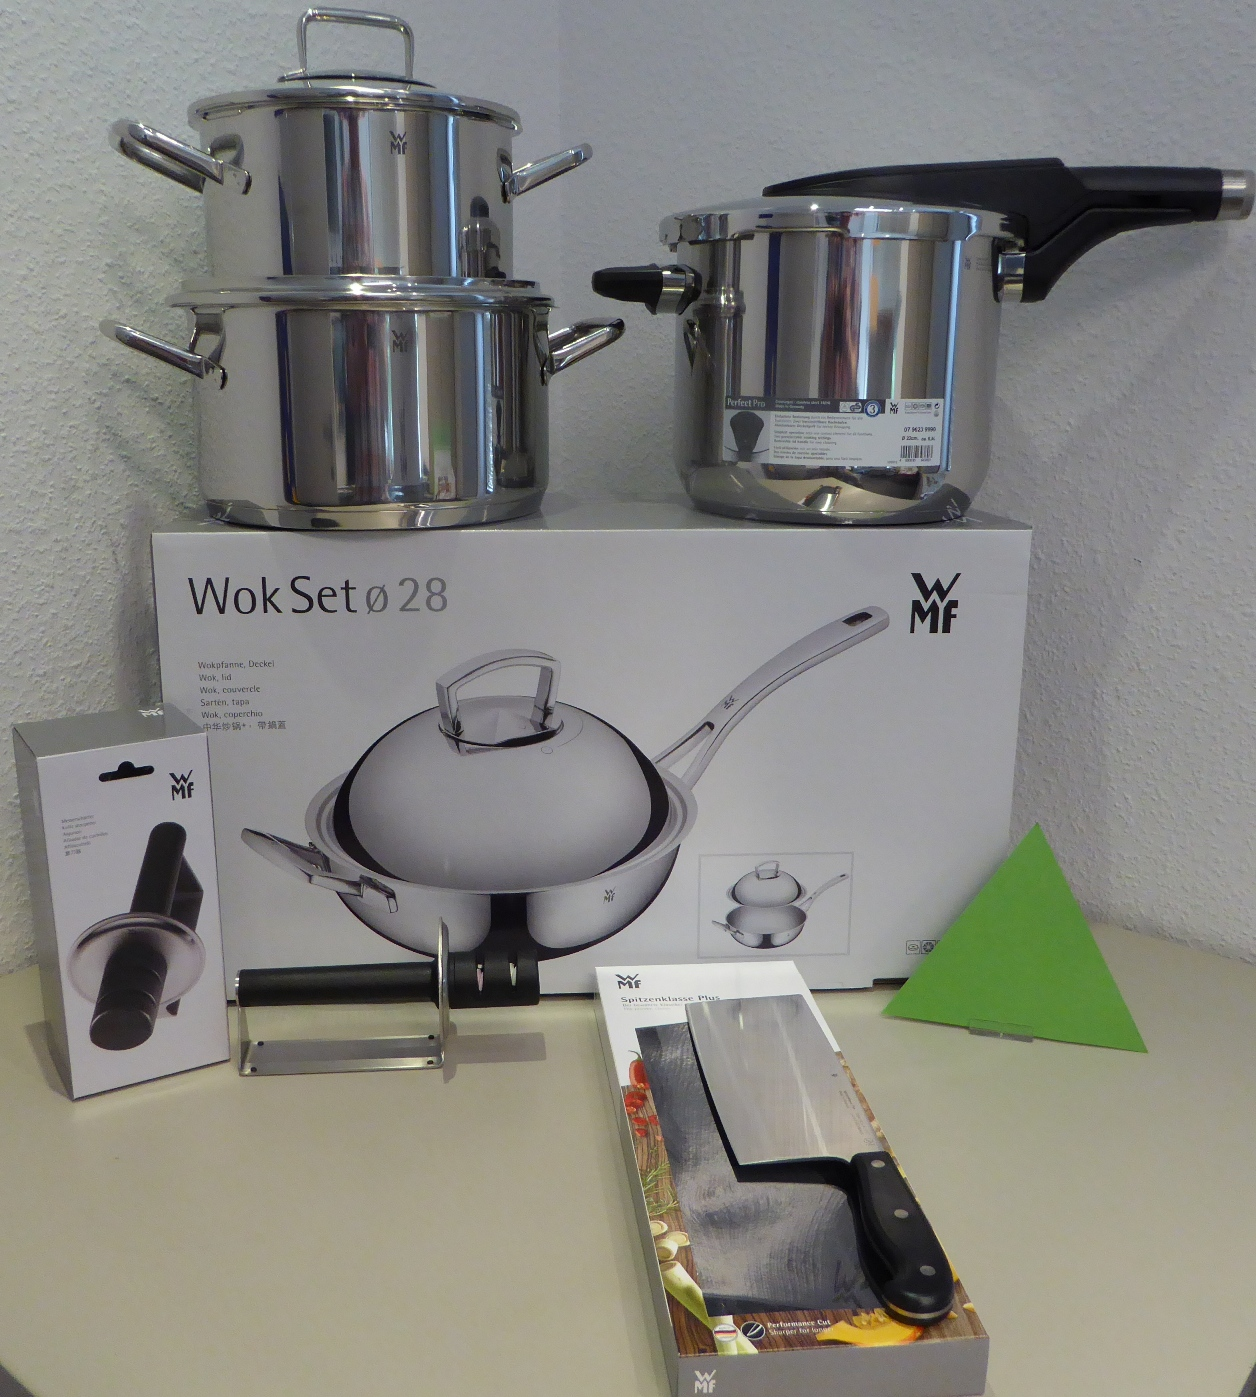 homann schenken kochen wohnen wmf asia set 1 wok t pfe messer made in germany. Black Bedroom Furniture Sets. Home Design Ideas